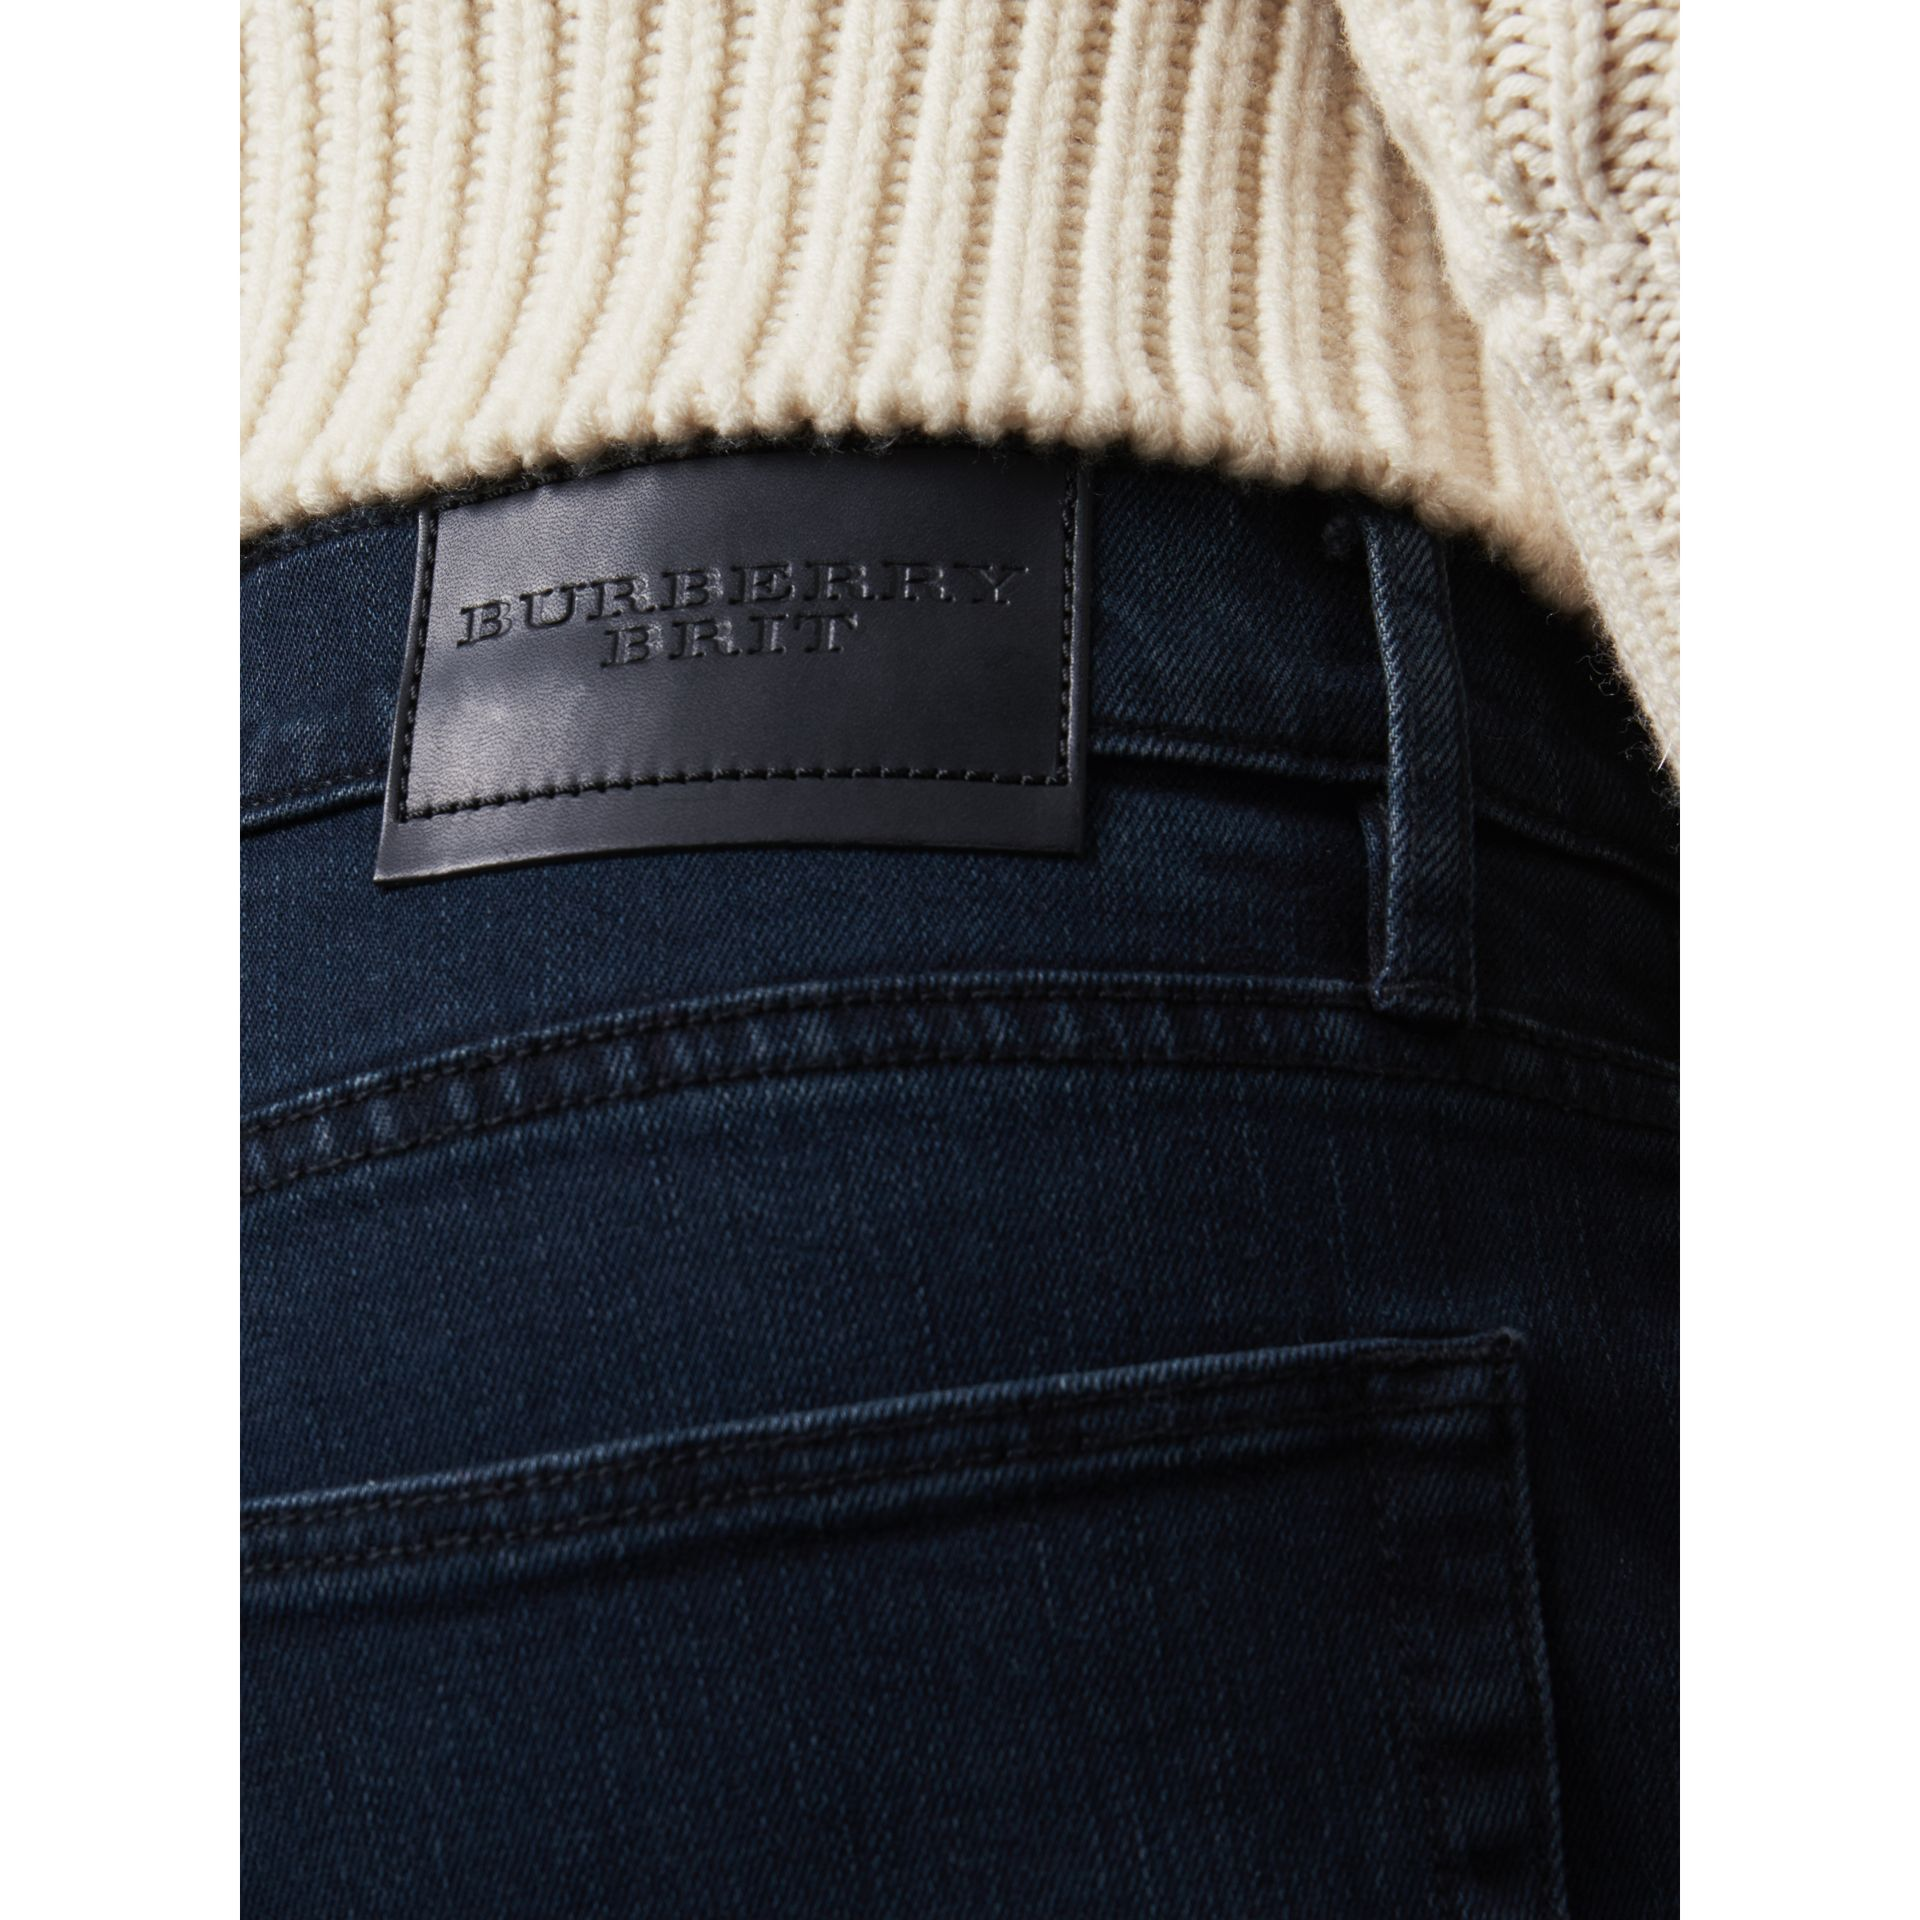 Straight Fit Stretch Denim Jeans in Dark Indigo - Men | Burberry - gallery image 1